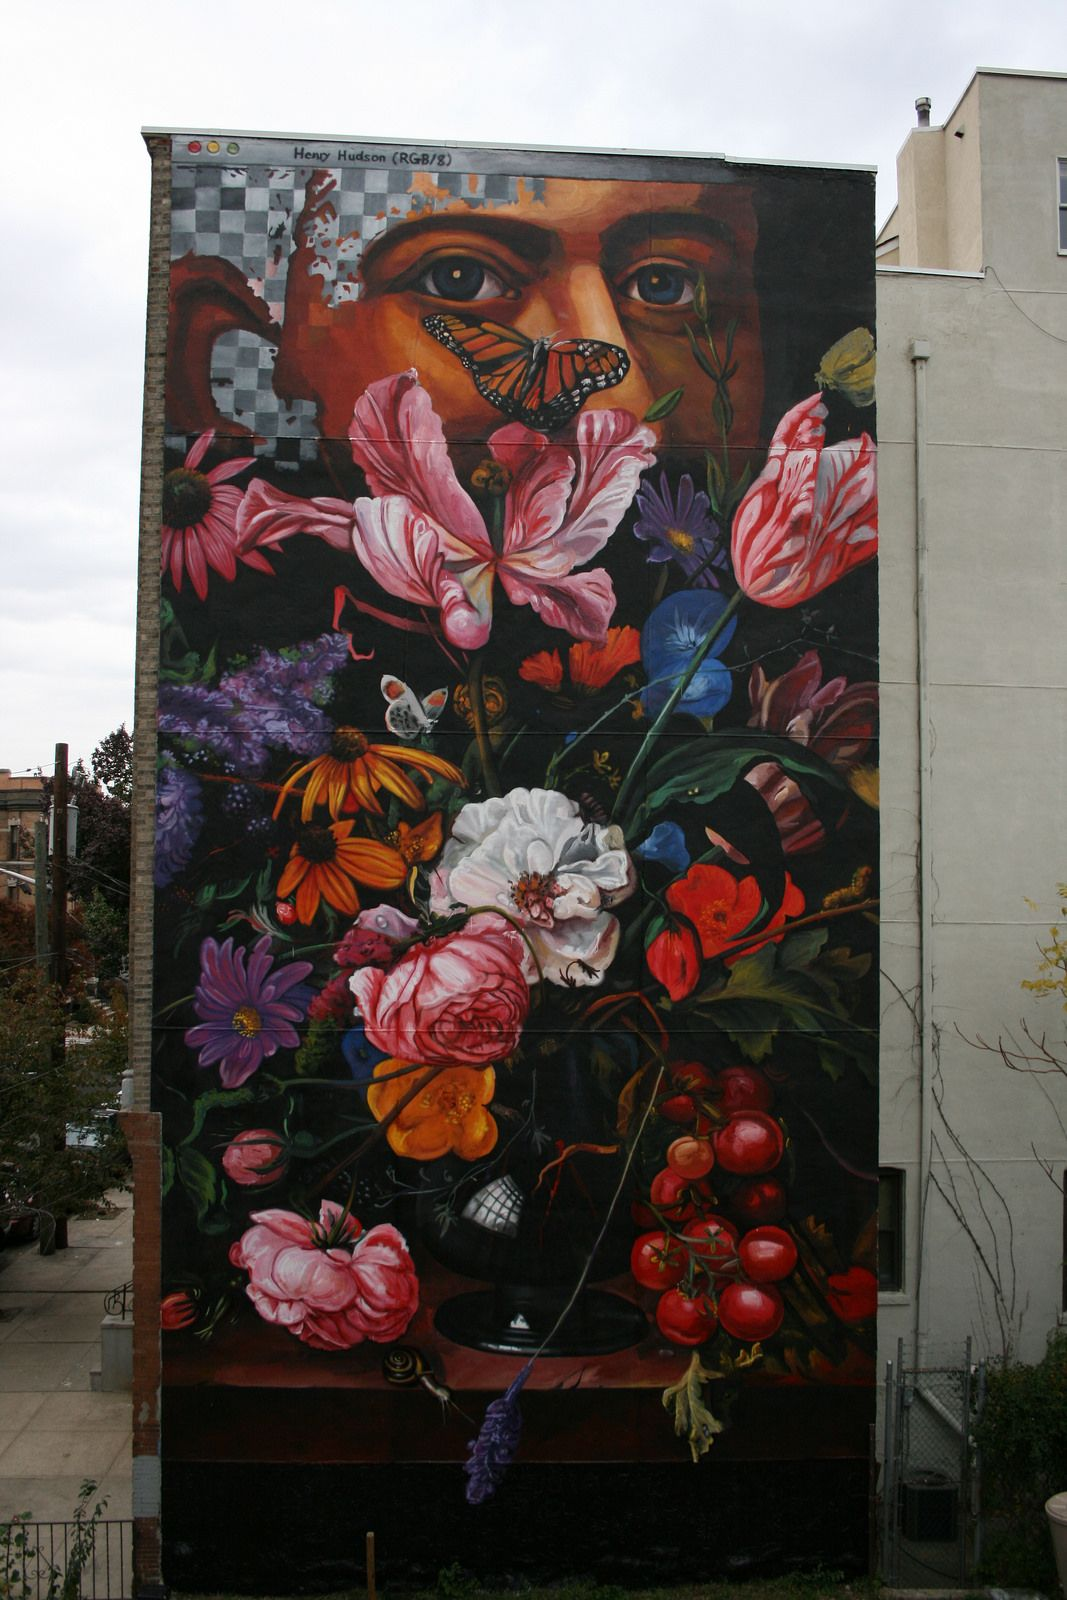 Graffiti art jersey city -  We Shall Overcome By Case Maclaim In Jersey City Nj 10 15 Lp Street Art Kunst Op Straat Pinterest We Cases And Jersey